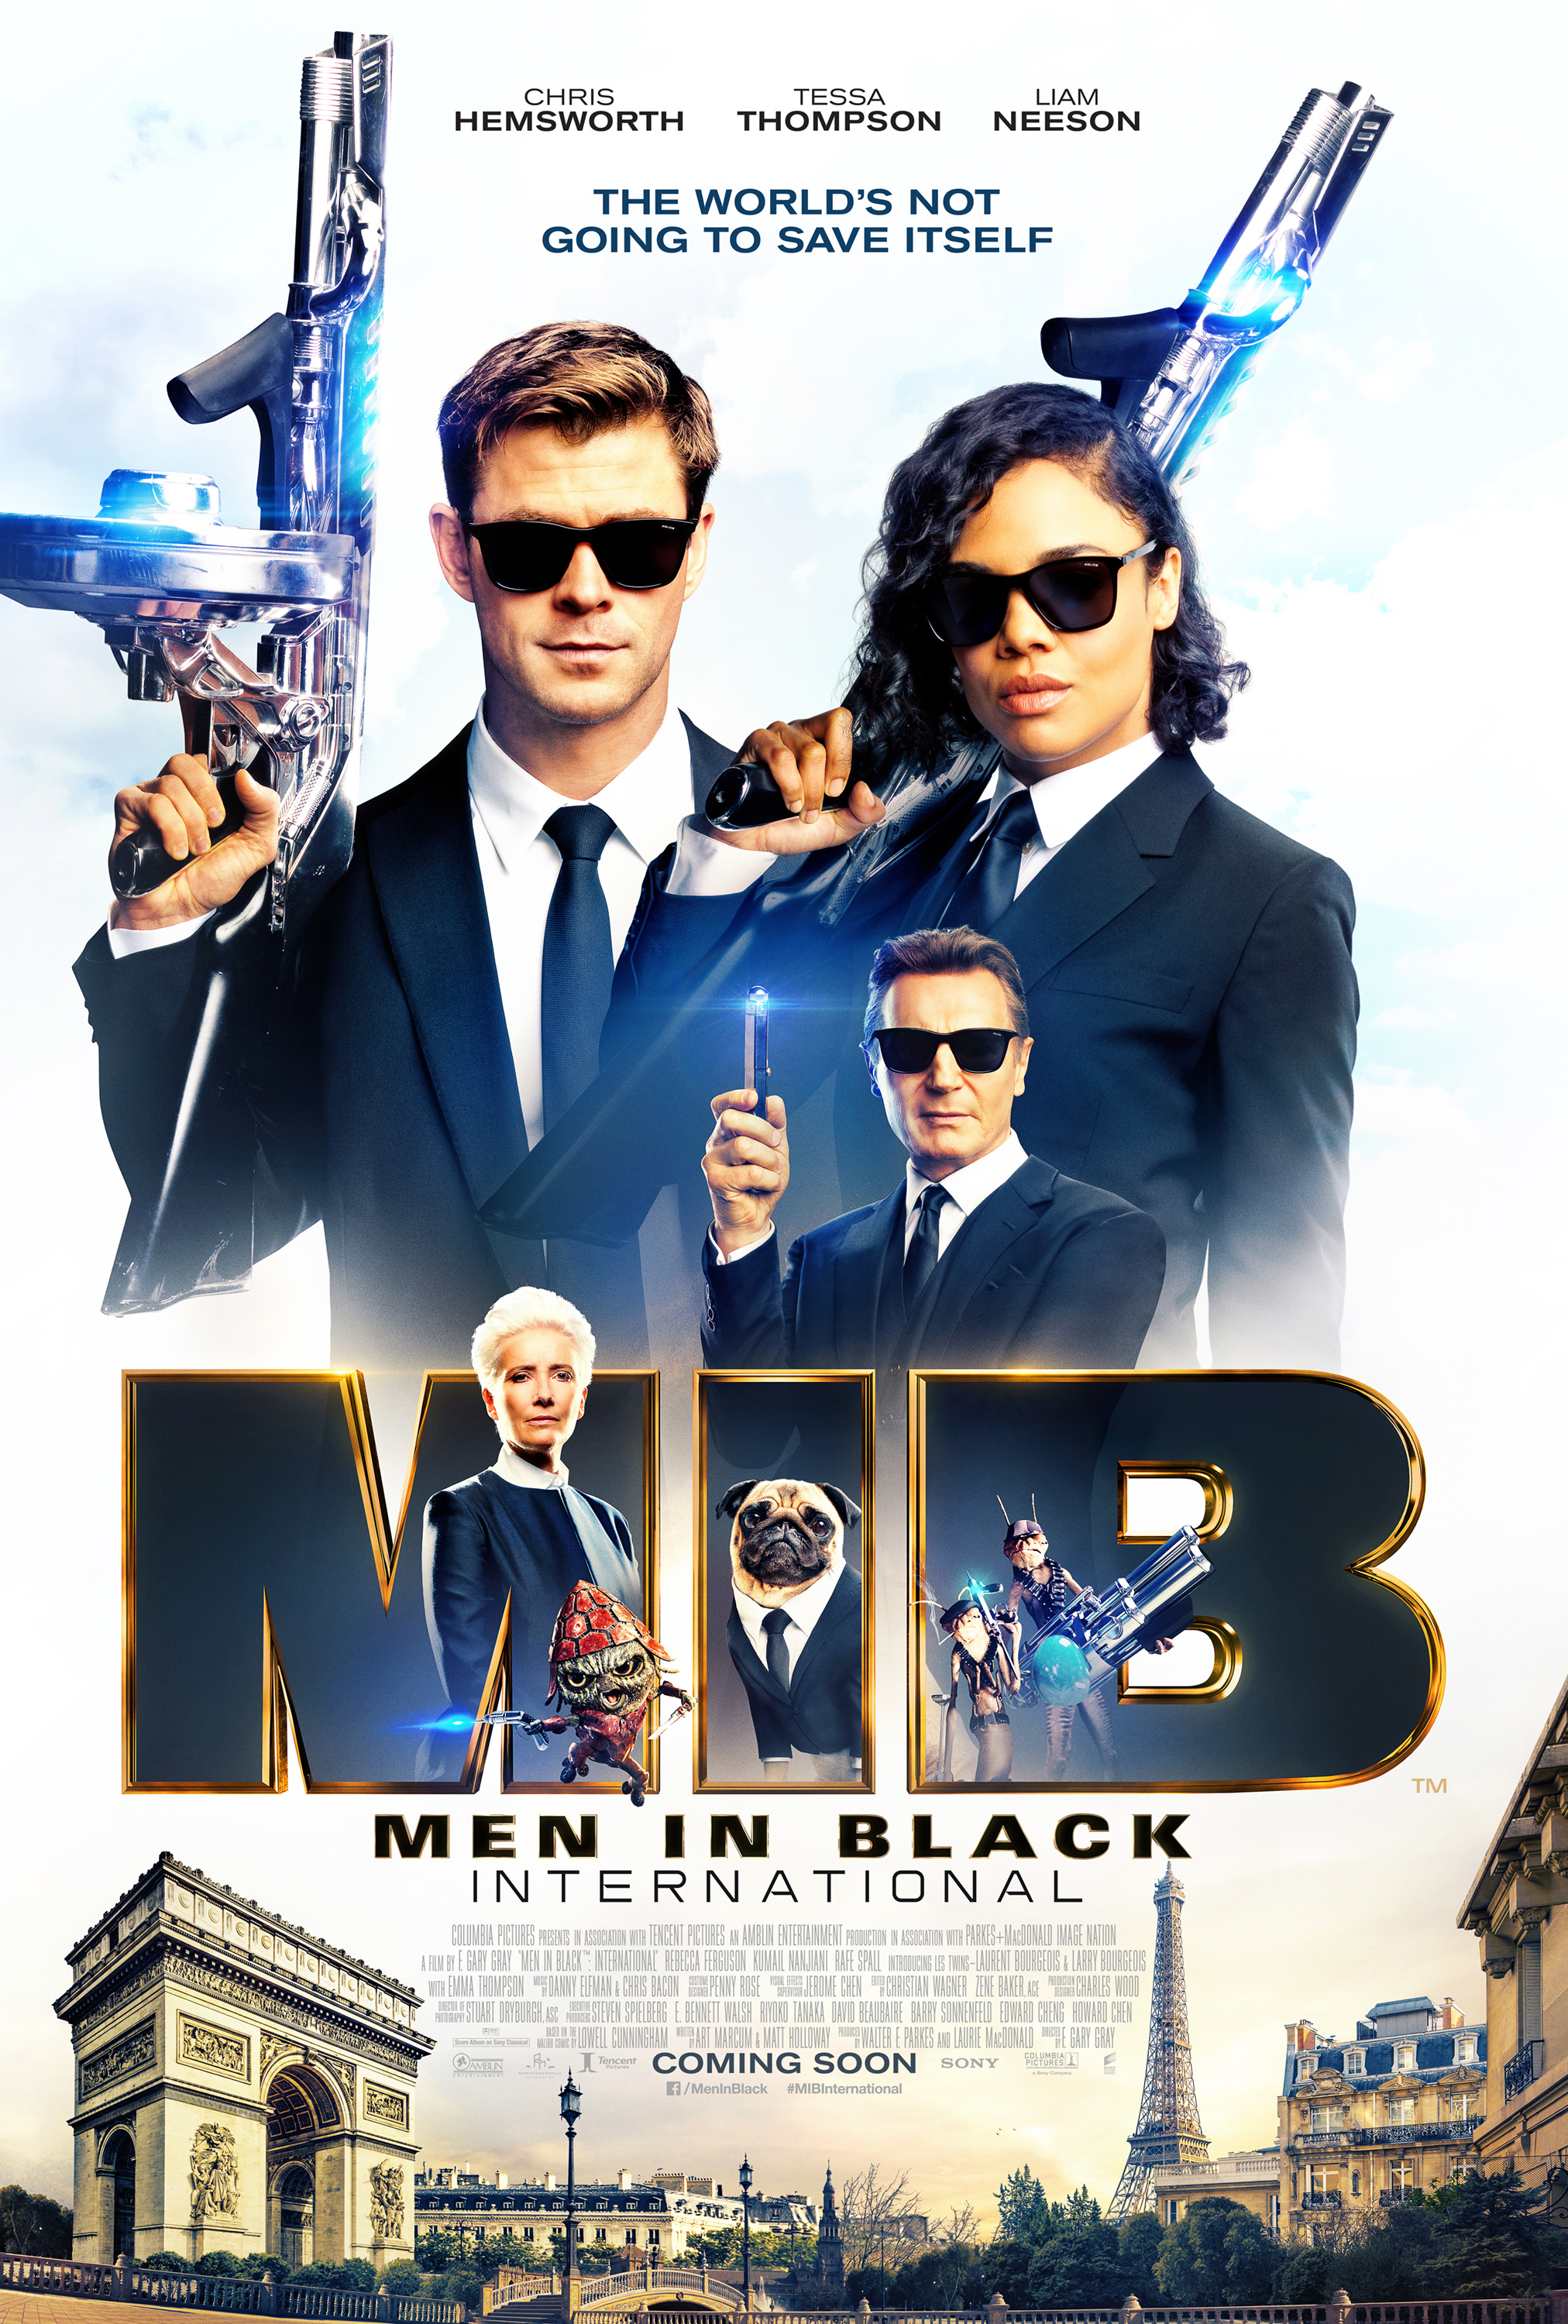 Men In Black -International - by Kathia WoodsMen In Black was initially introduced to us in 1997 starring the iconic Will Smith and Tommy Lee Jones. It's 2019, and we have a new dynamic duo, Tessa Thompson and Chris Hemsworth.Thompson is an alien conspiracy follower, and Hemsworth is the good-looking super-agent Agent H representing the international wing of the agency. His mentor Agent High T embodied by Liam Neeson is the man in charge.They are still chasing extra-terrestrials that threaten the sanctity of mother earth, but this time the threat is internal as well. The agency has a mole.There were high expectations for Men in Black International. Thompson is coming off the success of Creed 2 and Hemsworth of the juggernaut known as The Avengers. They first worked together in the hit Thor- Ragnarok so one would think that they would strike magic again. Sadly No.The issue with this movie is that the plot is all over the place. We have two great actors with great comedic timing that were given this common theme. The film opens with a daring mission in Paris and then pivots to Agent M childhood. Young Molly embodied by Mandeiya Flory first sees the Men In Black twenty years ago during her first contact with an alien, since then she's been obsessed with joining the agency. Back in the future, she finally locates the elusive group and is given a chance to prove herself by Agent O played by the charming Emma Thompson. The interaction between Thompson and Thompson were one of the better parts of the movie. The joy of finally getting fitted for that black jacket meant everything to Molly.Unfortunately, the movie doesn't continue this euphoric ride. Men In Black International has an opportunity to create great comedic moments just like its predecessor however the script never takes advantage of the enthusiastic spirit of Agent M and the boisterous self-indulgent Agent H. The jokes are flat and predictable. One minute we're looking for a killer, then a mole inserted with agent H enemies coming back to haunt him. It's dizzying just typing all the events; hence, the audience never connects to these characters. Kumail Nanjiani was added as Pawny to bring additional comedic relief, but even he can't save this film. I was delighted to see dance icons Les Twins make their screen debut, but they too deserved better.So let's review you have Tessa Thompson, Chris Hemsworth, Emma Thompson, Kumail Nanjiani and Liam Neeson yet Men In Black International still is dismal. The blame for that are screenwriters Matt Holloway and Art Marcum. They never managed to understand who these characters are instead built a script on cheap jokes sprinkled in with fake feminism. F. Gary Gray attempted despite the above to cut and piece together a fun ride, but it's hard when the foundation is shaky. This is one time where special effect and star power doesn't translate into a winner.If you want to see a better connection between Thompson and Hemsworth watch Thor Ragnarok. Men In Black International was an idea that needed to stay on paper.Diversity: This movie gets a 5 for Tessa Thompson and Emma Thompson. Kumail Nanjiani was also cast, but he plays a pawn.Scale: This movie receives a 5 for messiness.